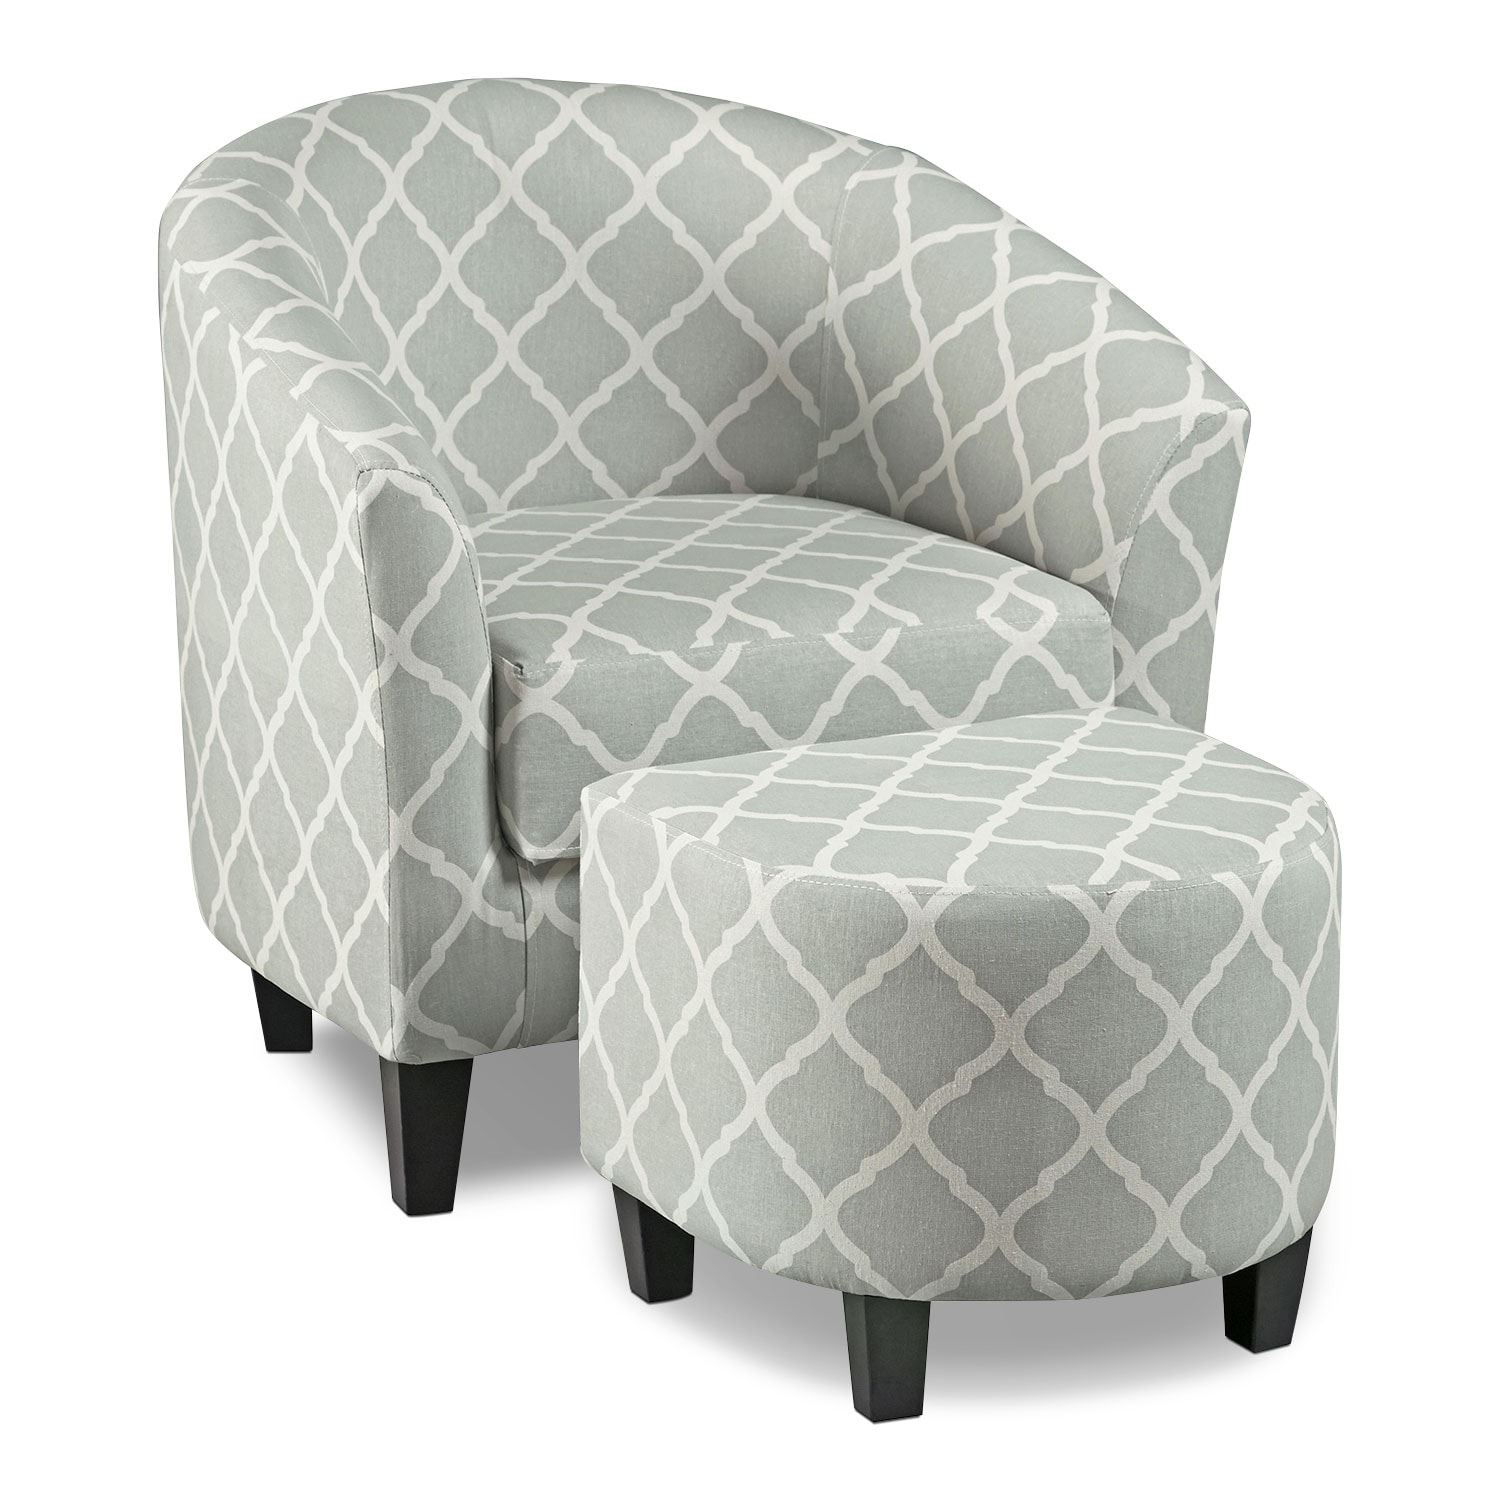 modern ottoman armchair accent of chair incredible ideas with amazing